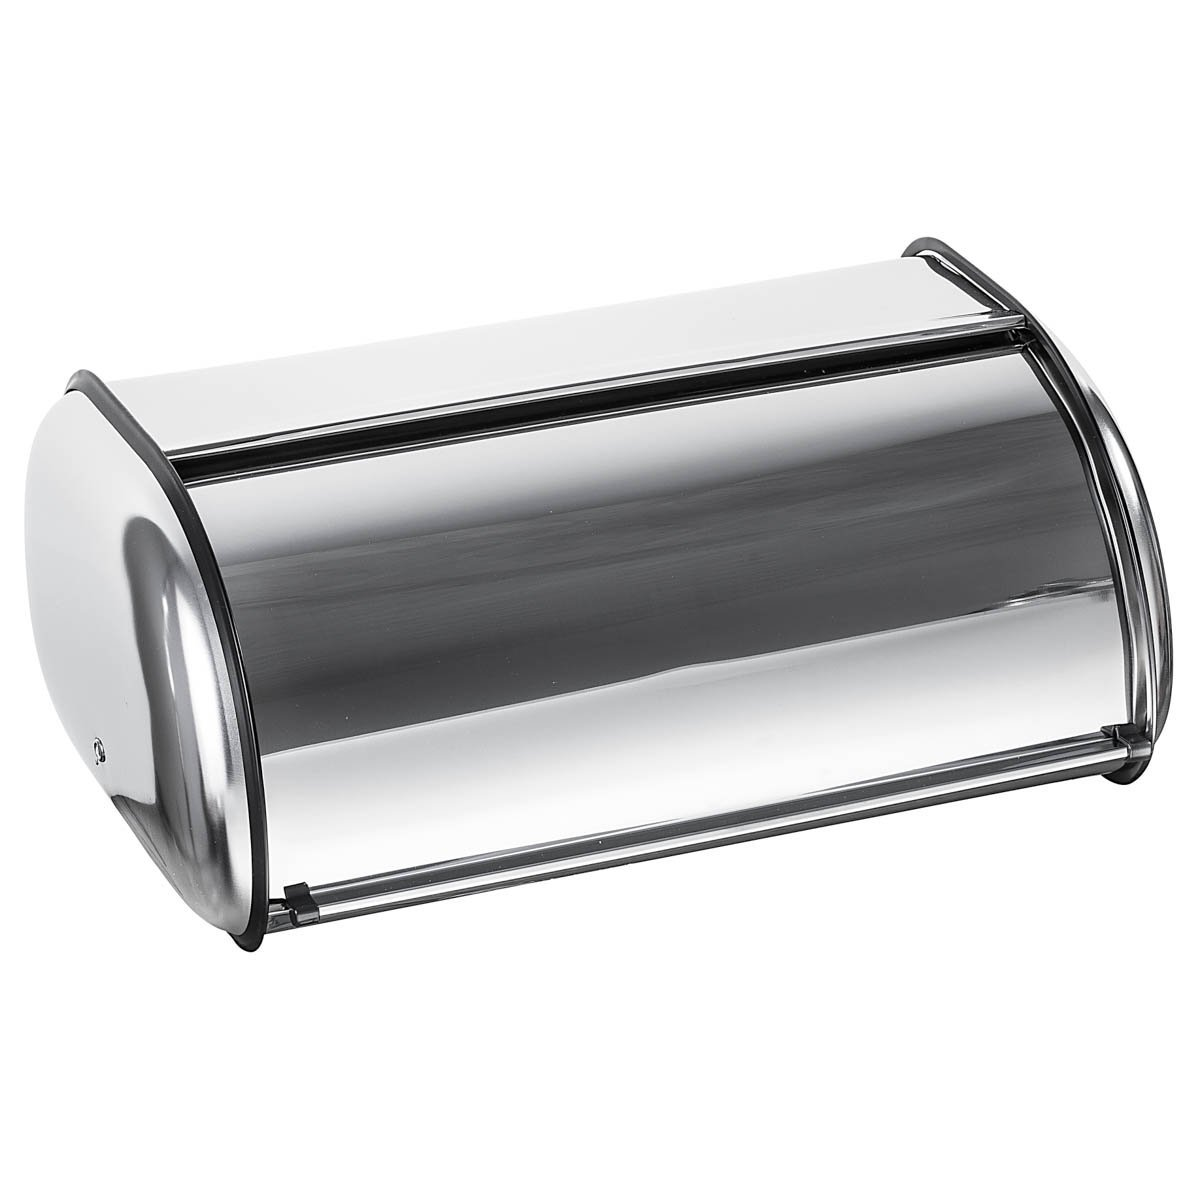 Delicieux Stainless Steel Bread Box For Kitchen, Bread Bin, Bread Storage 16.5x10x8